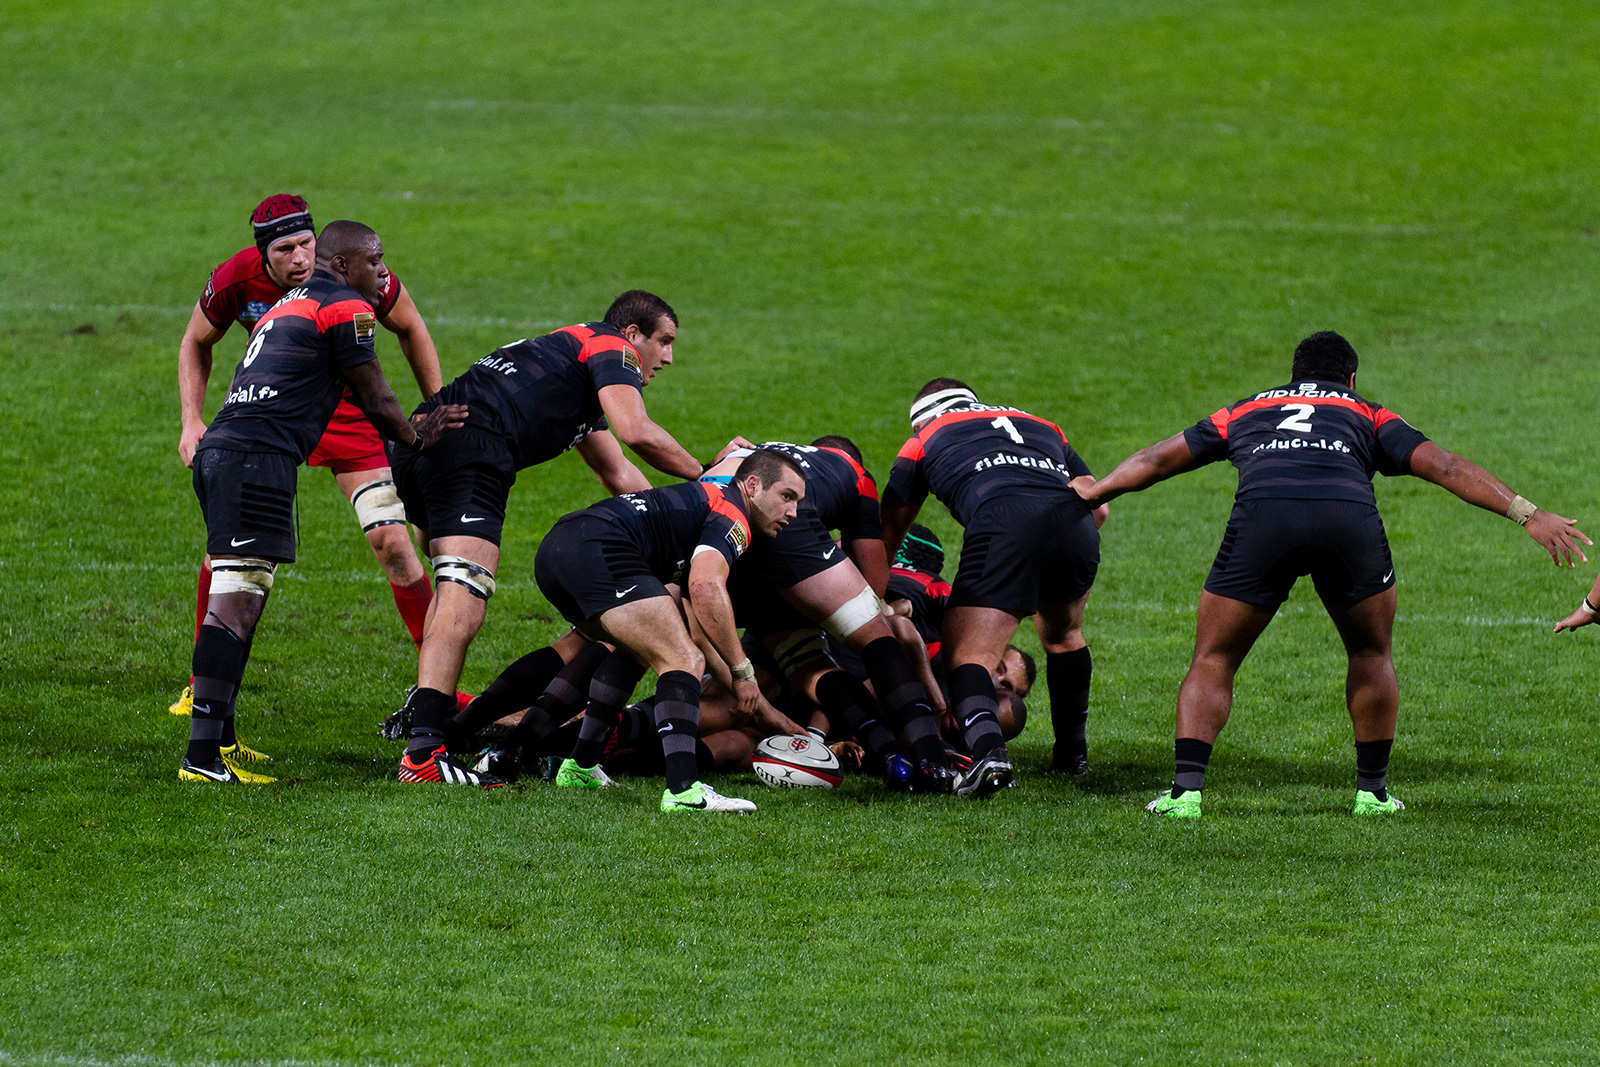 Rugby Stade Toulousain vs RC Toulon en direct streaming live